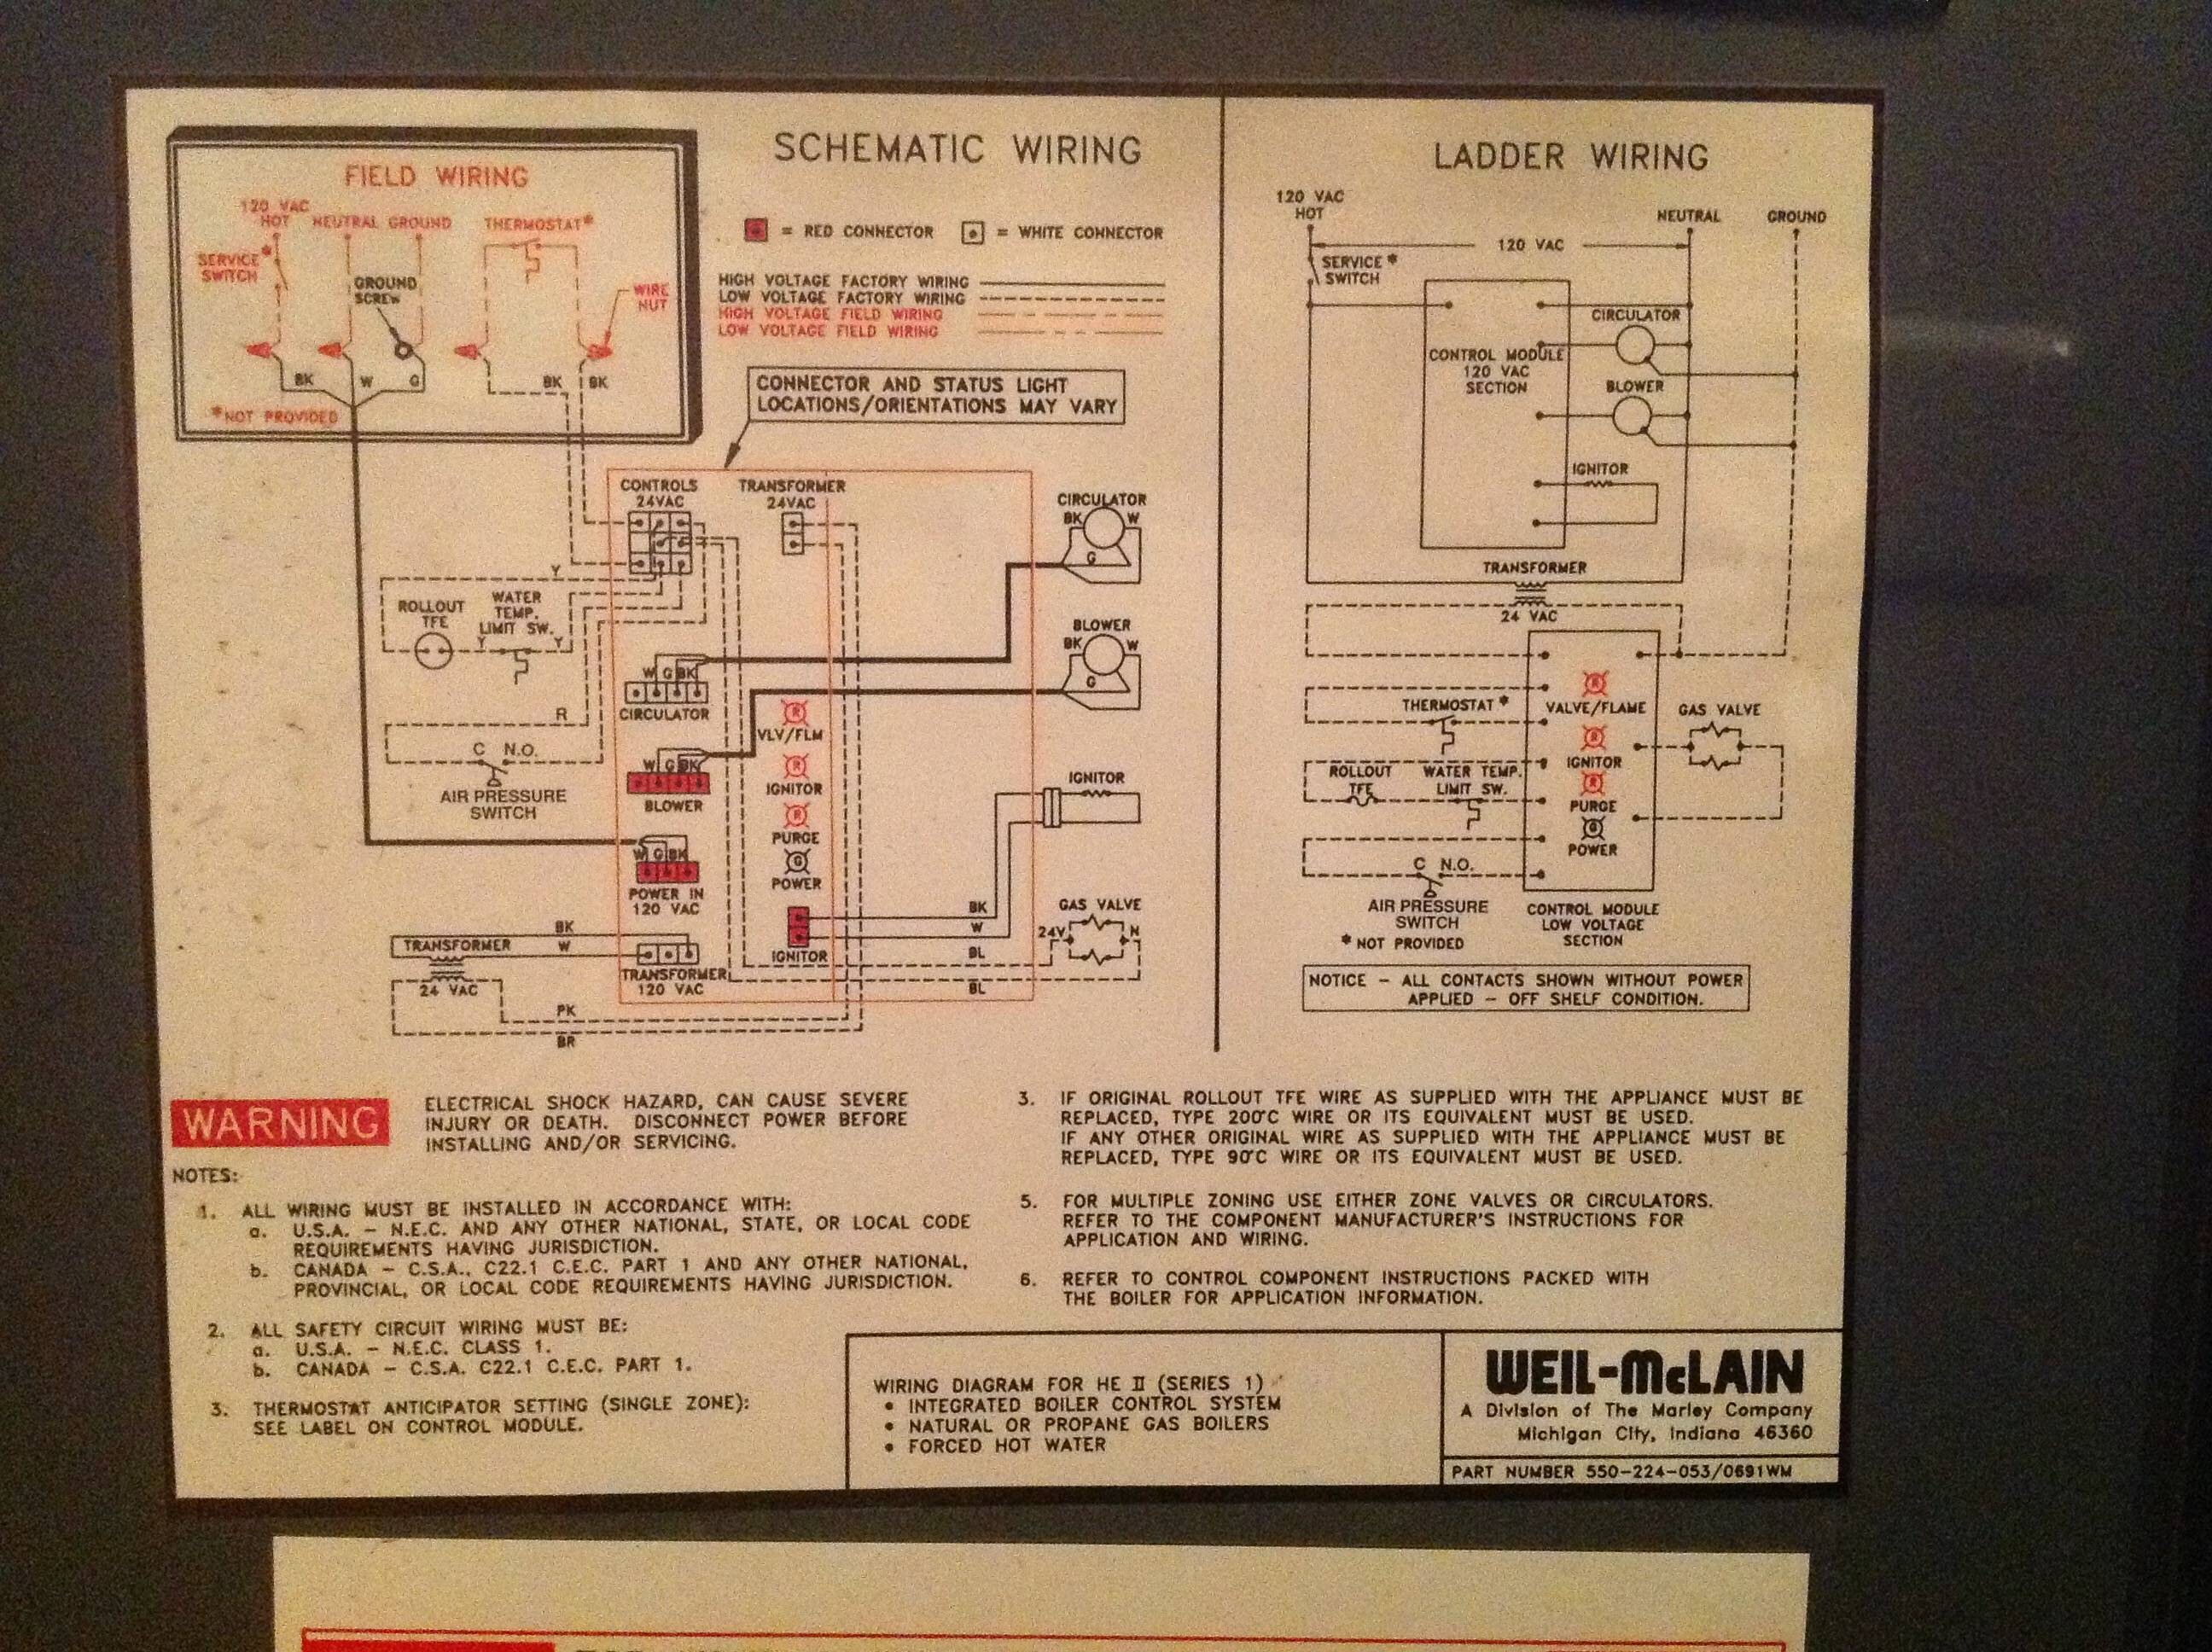 schematic diagram of house wiring simple one way switch electrical - where to connect thermostat c wire weil-mclain he2 series 1 boiler home ...